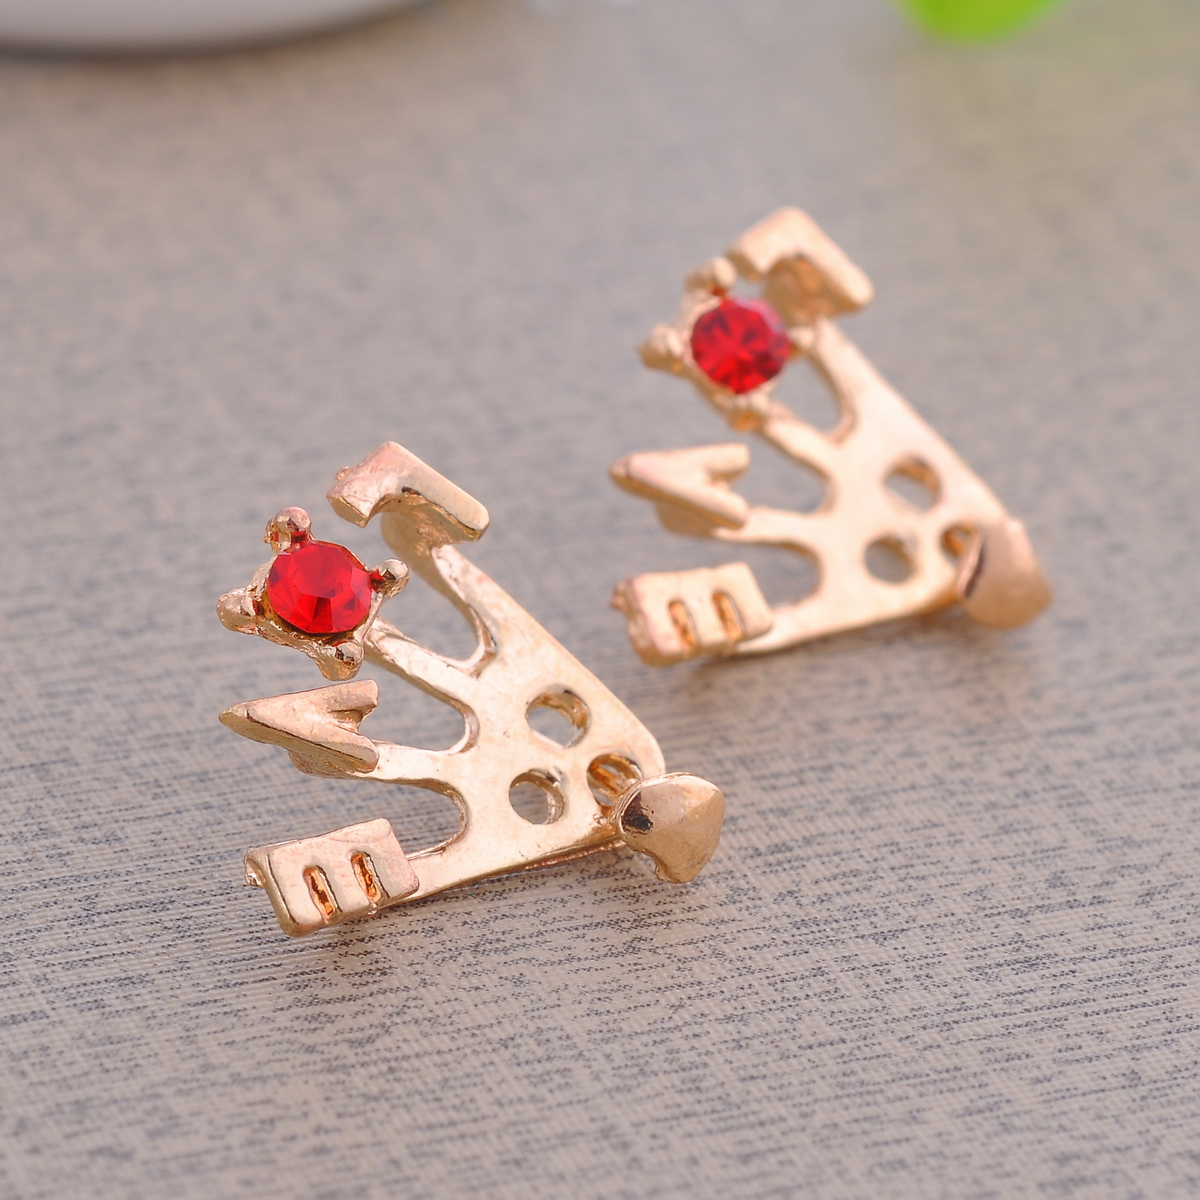 CHIC LOVE Rhinestone Crystal Earring Studs Women Charms 3colors Choosen | eBay